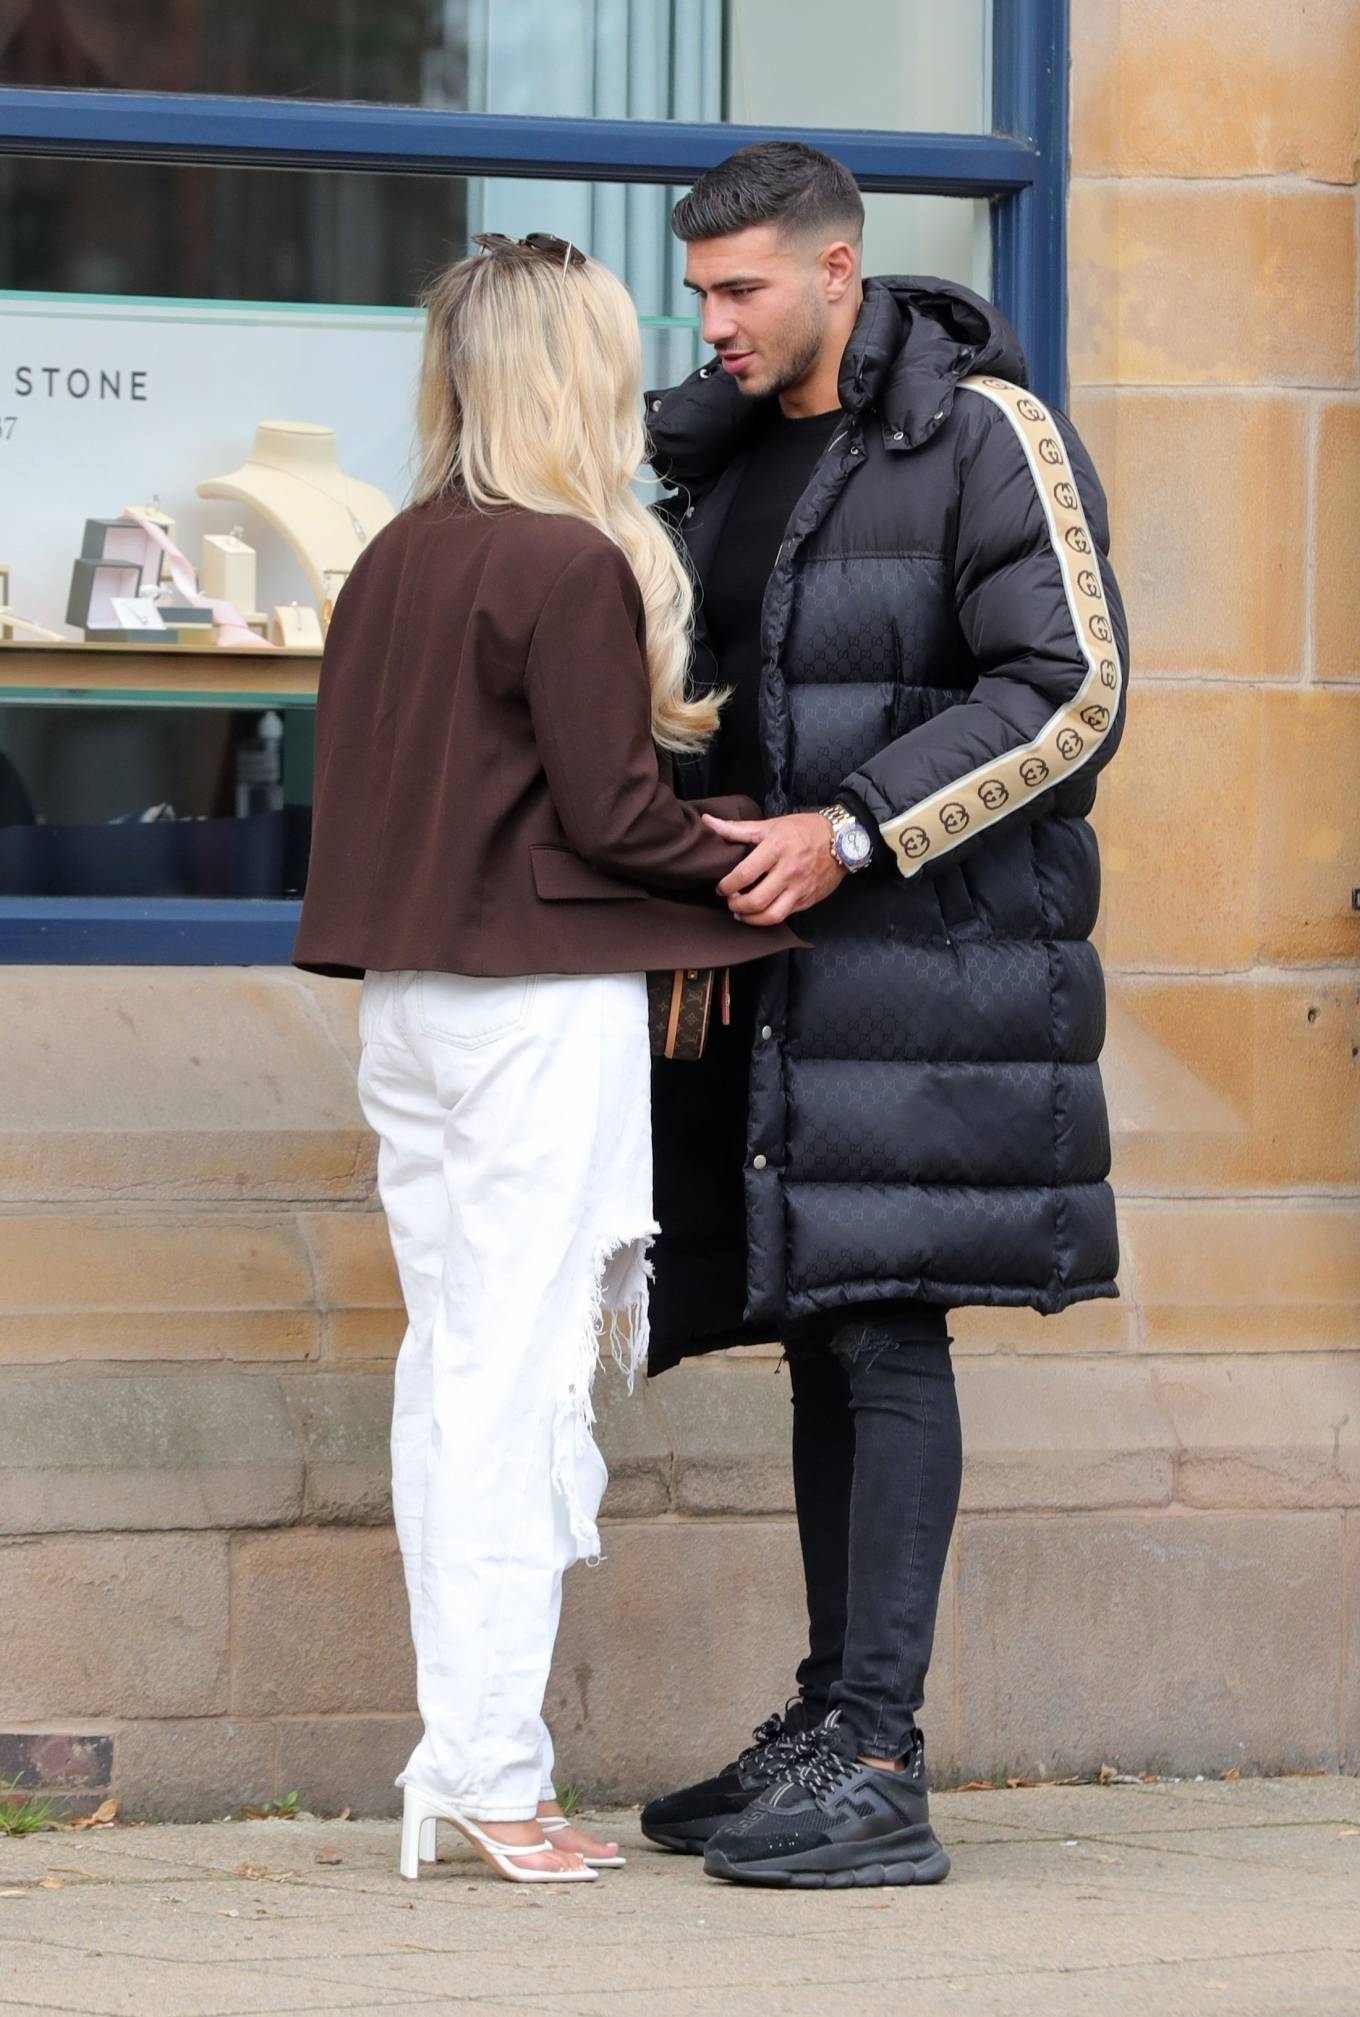 Molly-Mae Hague 2020 : Molly-Mae Hague and Tommy Fury – Seen while out in Cheshire -12